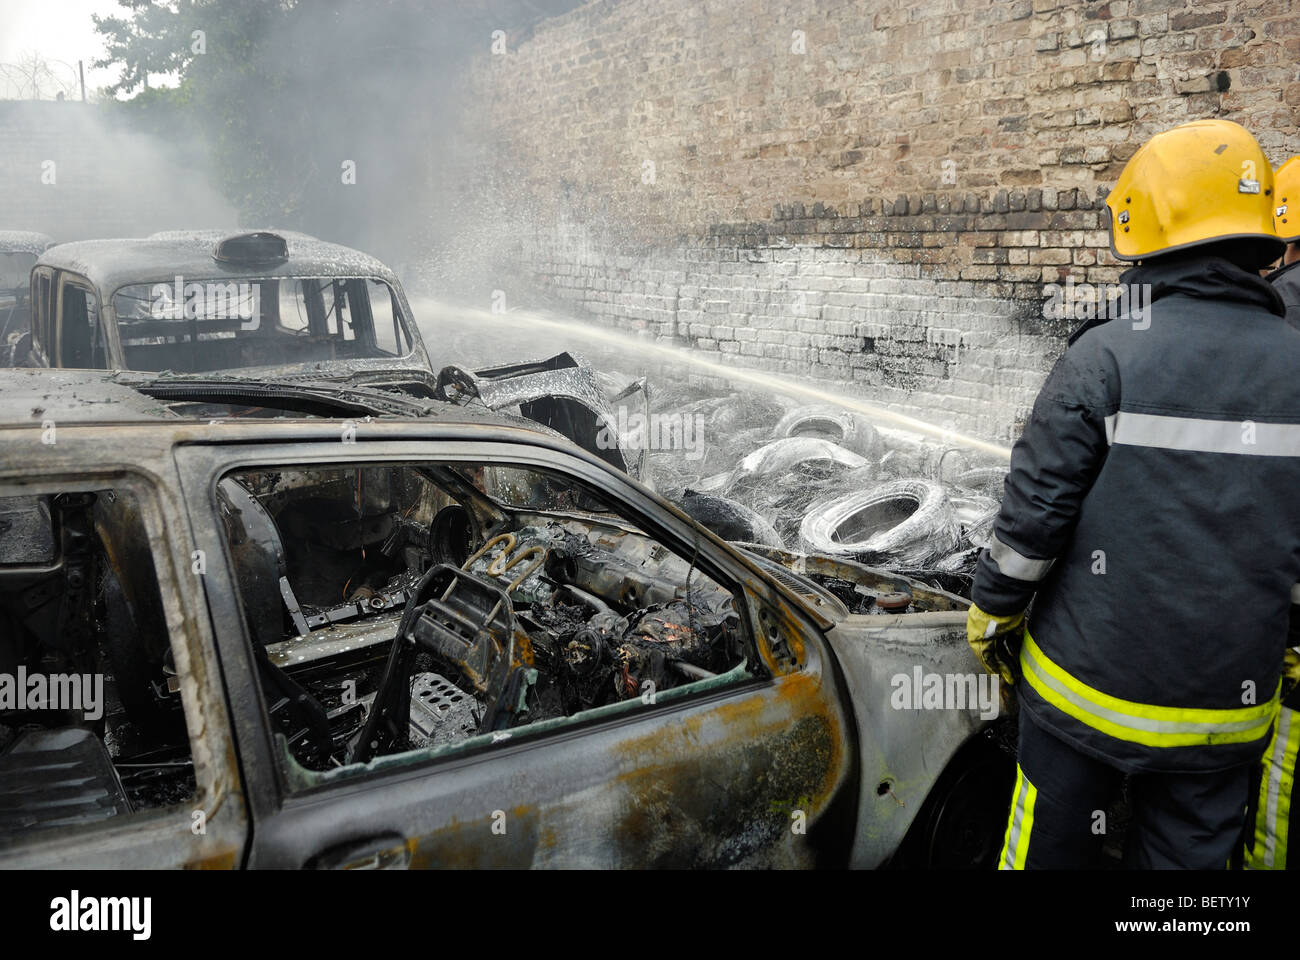 Car scrapyard on fire full of hackney cab taxis - Stock Image